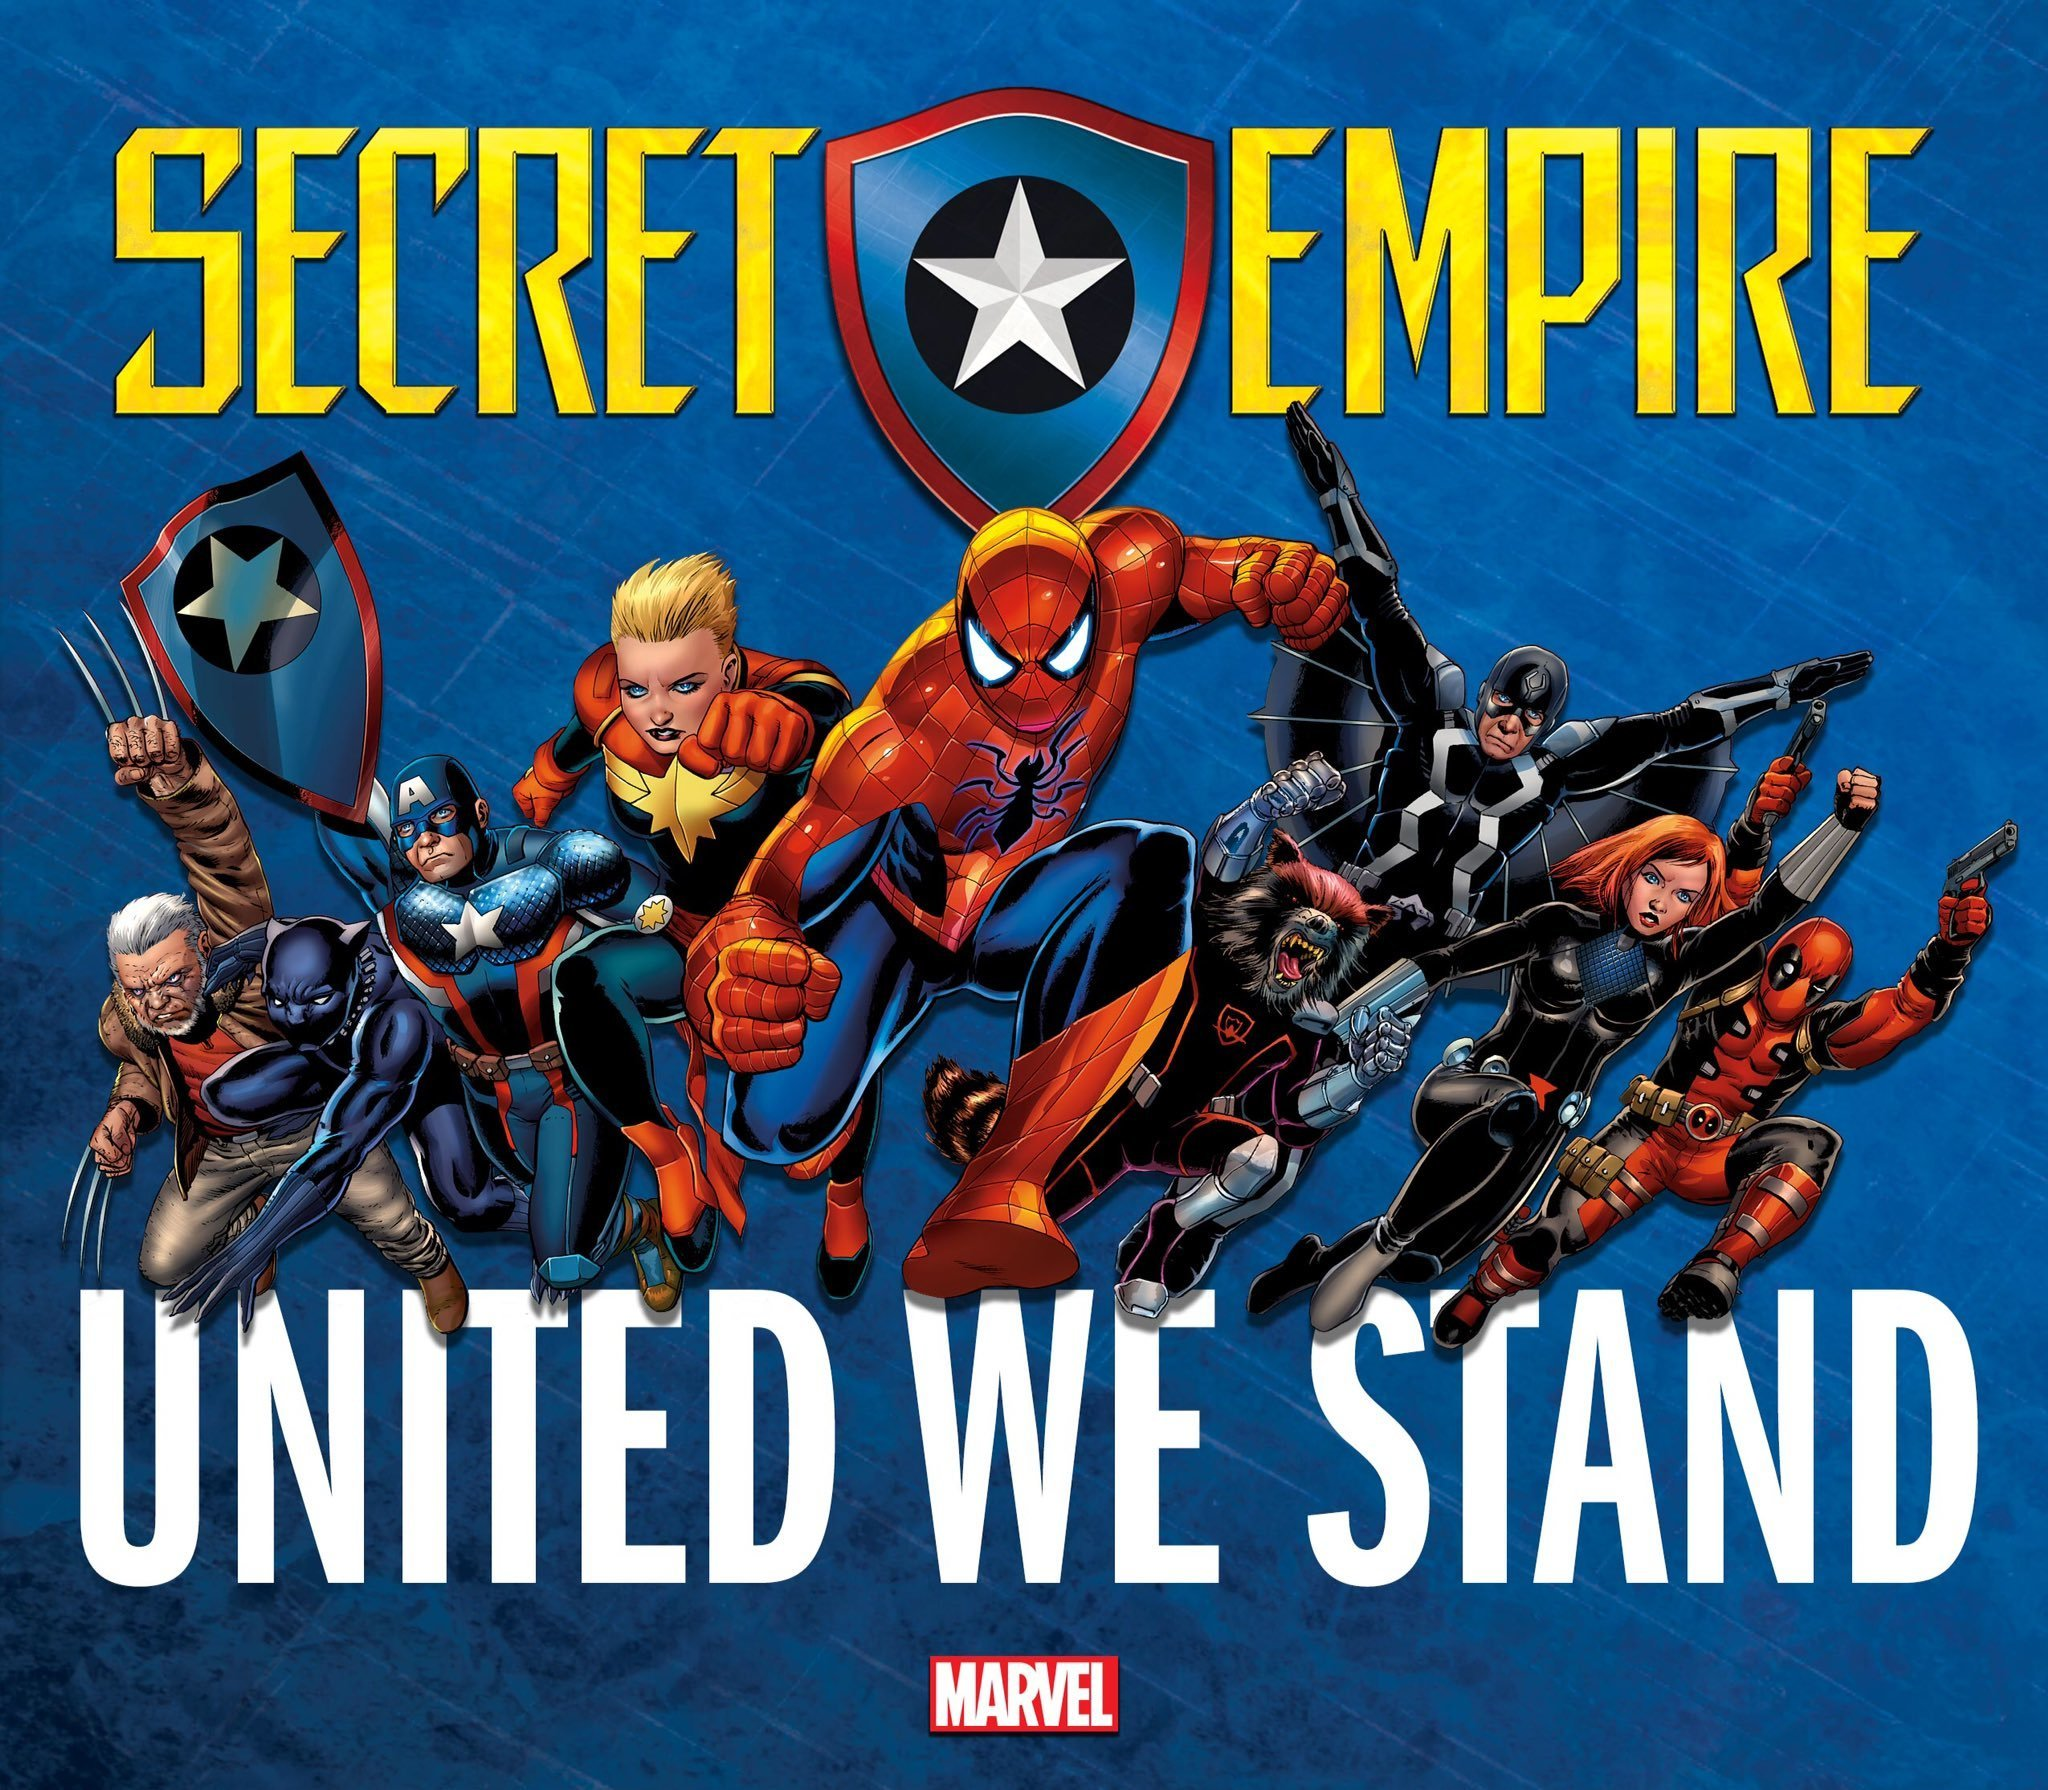 An earlier 'Secret Empire' promo image simply lines up Marvel's heroes against a yet-unnamed threat.